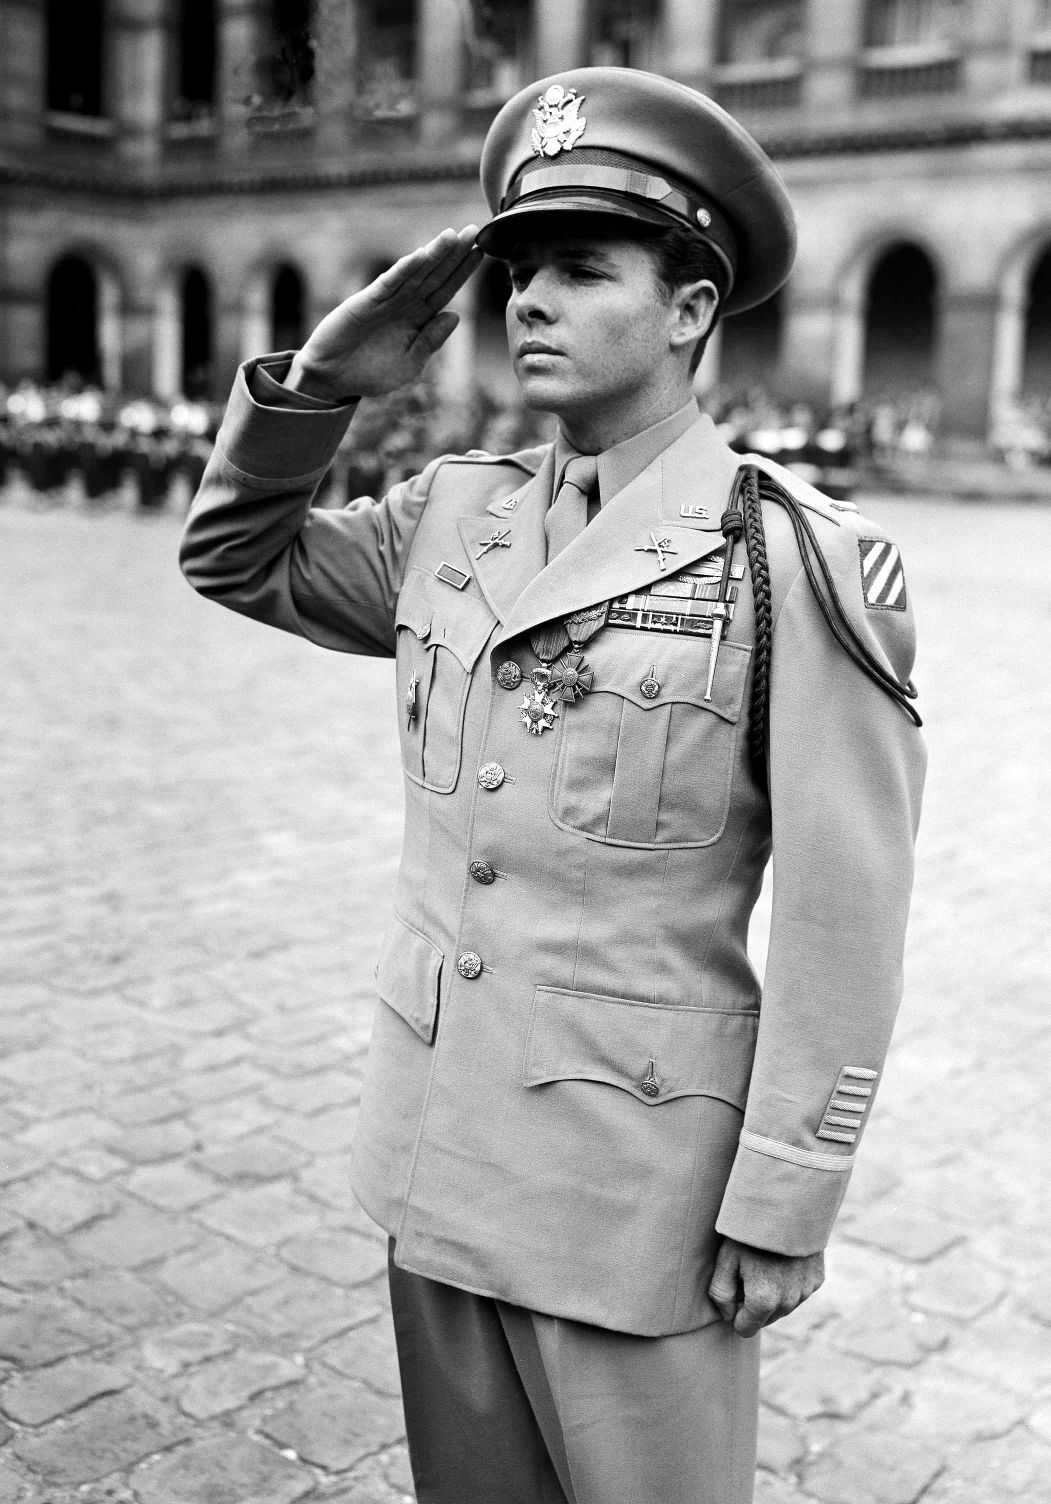 Baylor Historian S Audie Murphy Biography Explores Wwii